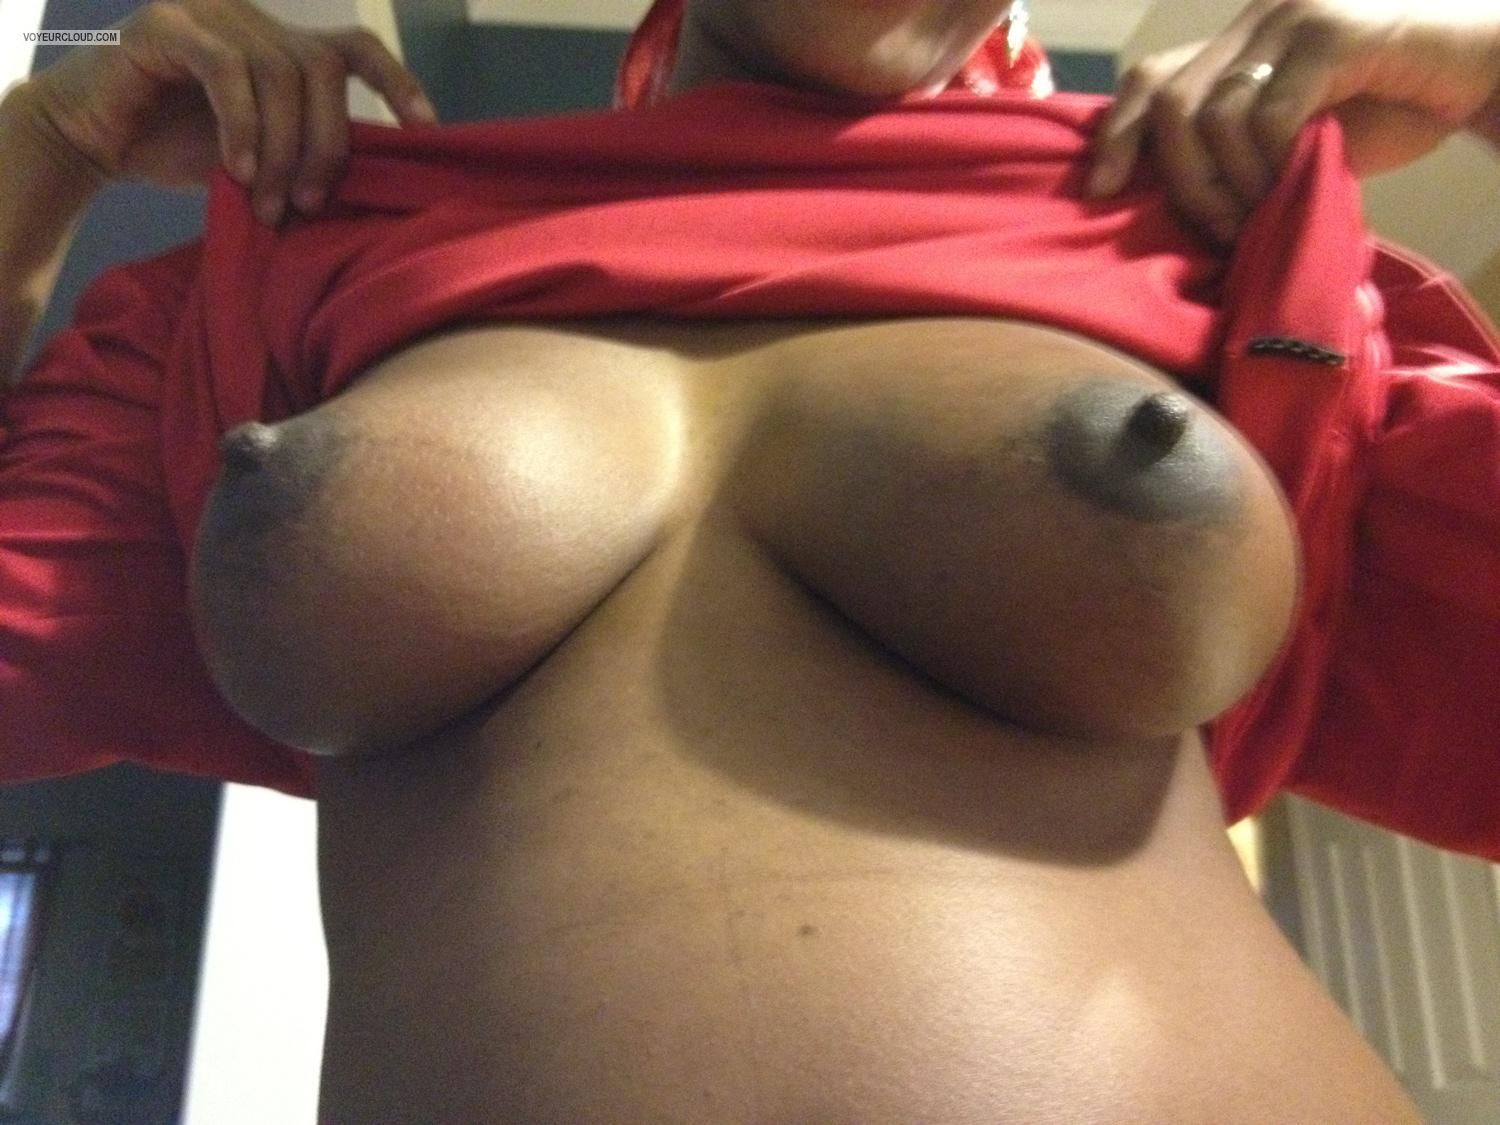 Tit Flash: Big Tits By IPhone - Bella from United States